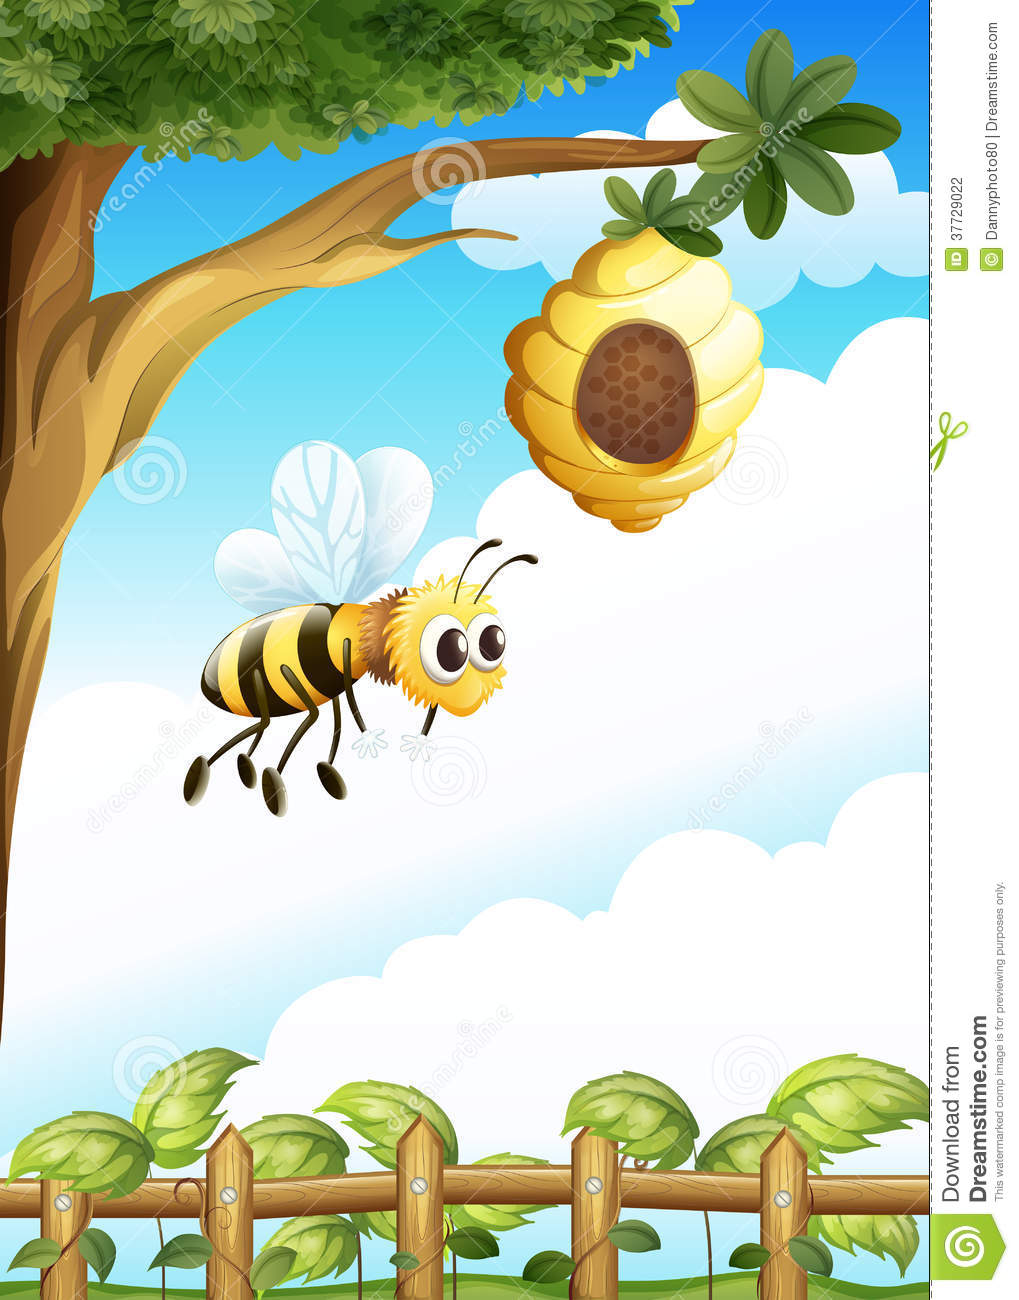 Beehive from tree clipart vector stock A Tree Near The Fence With A Beehive And A Bee Stock Photography ... vector stock